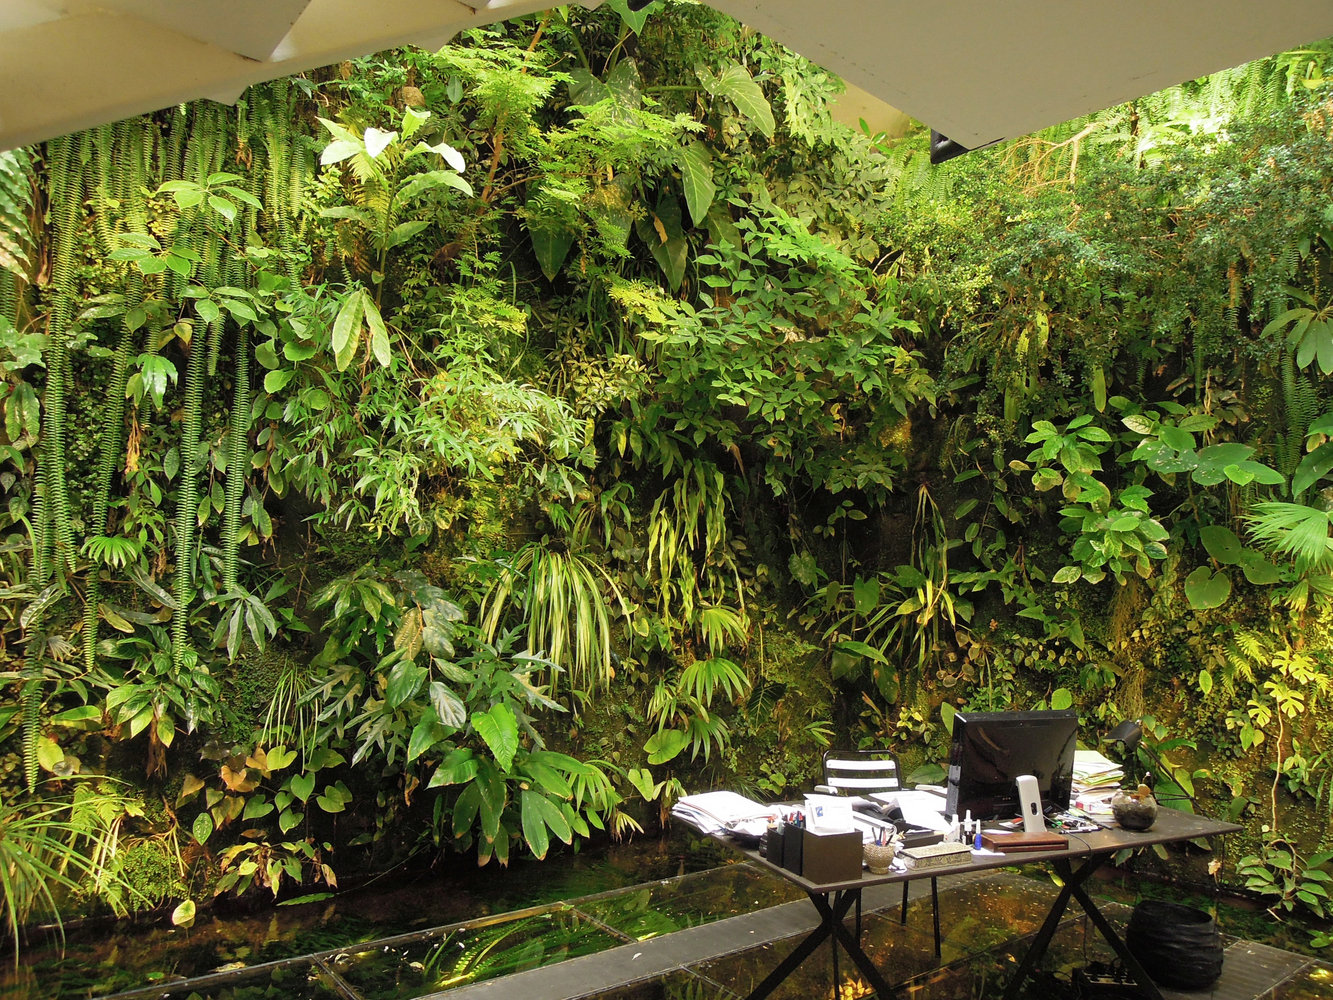 Indoor Vertical Garden In Patrick Blanc Home After Four Years Of Growth